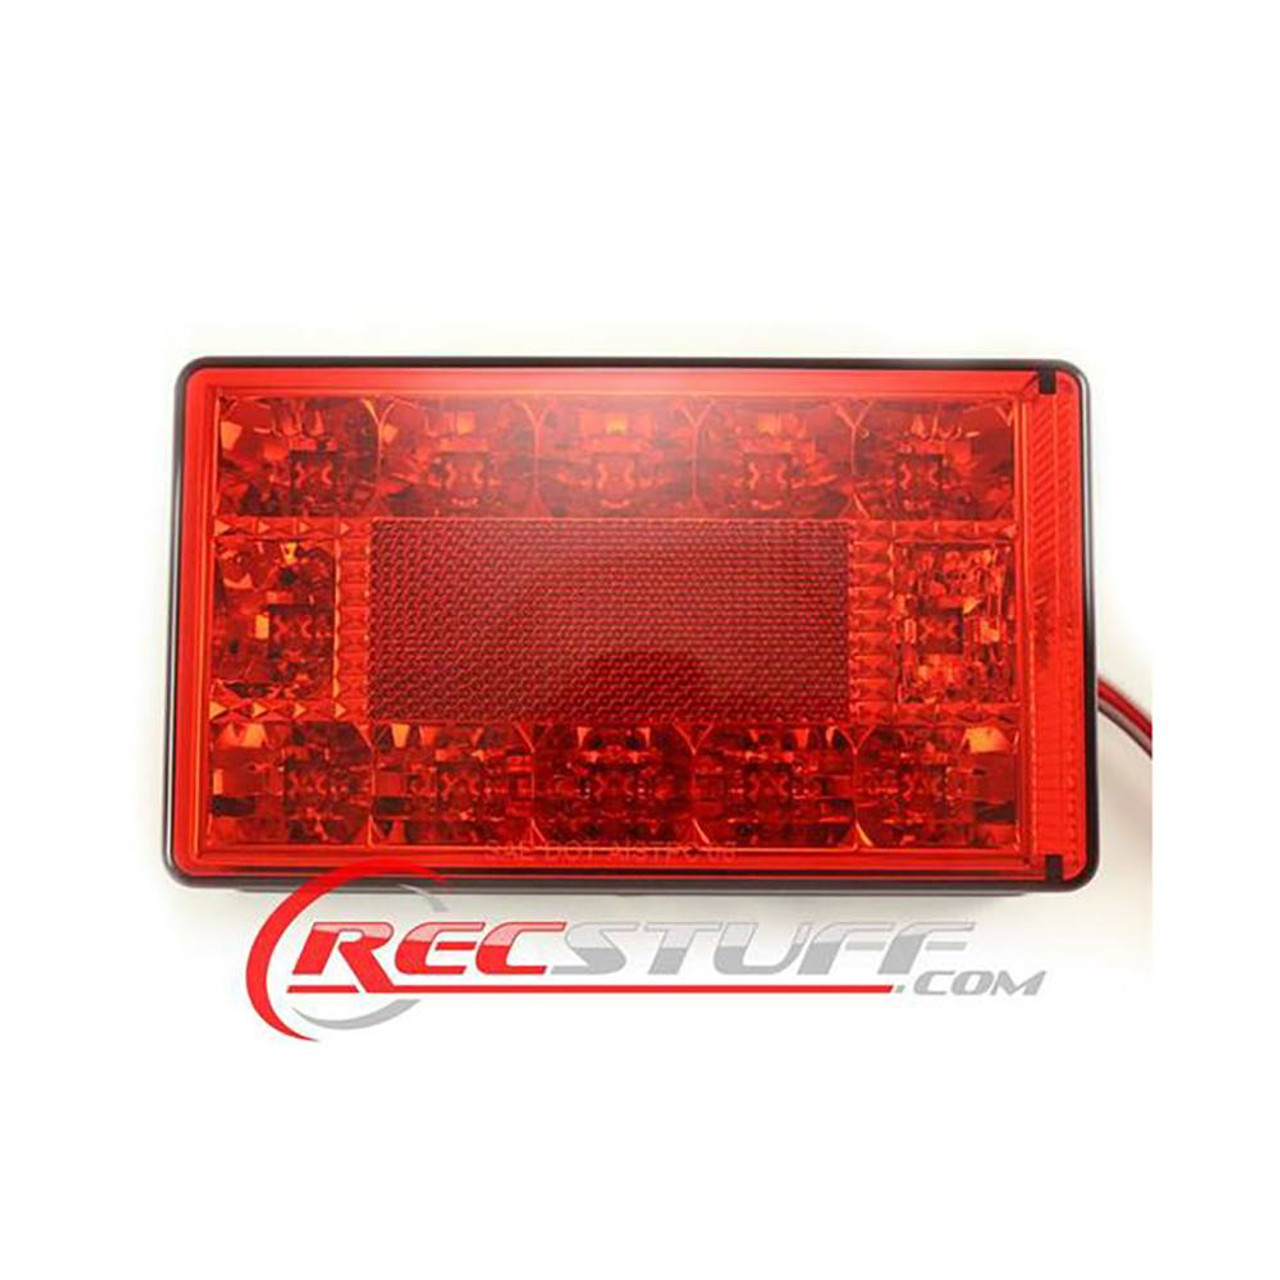 "Submersible LED Tail Light / Turn Signal Right Hand Under 80"" Light With Ground Wire"